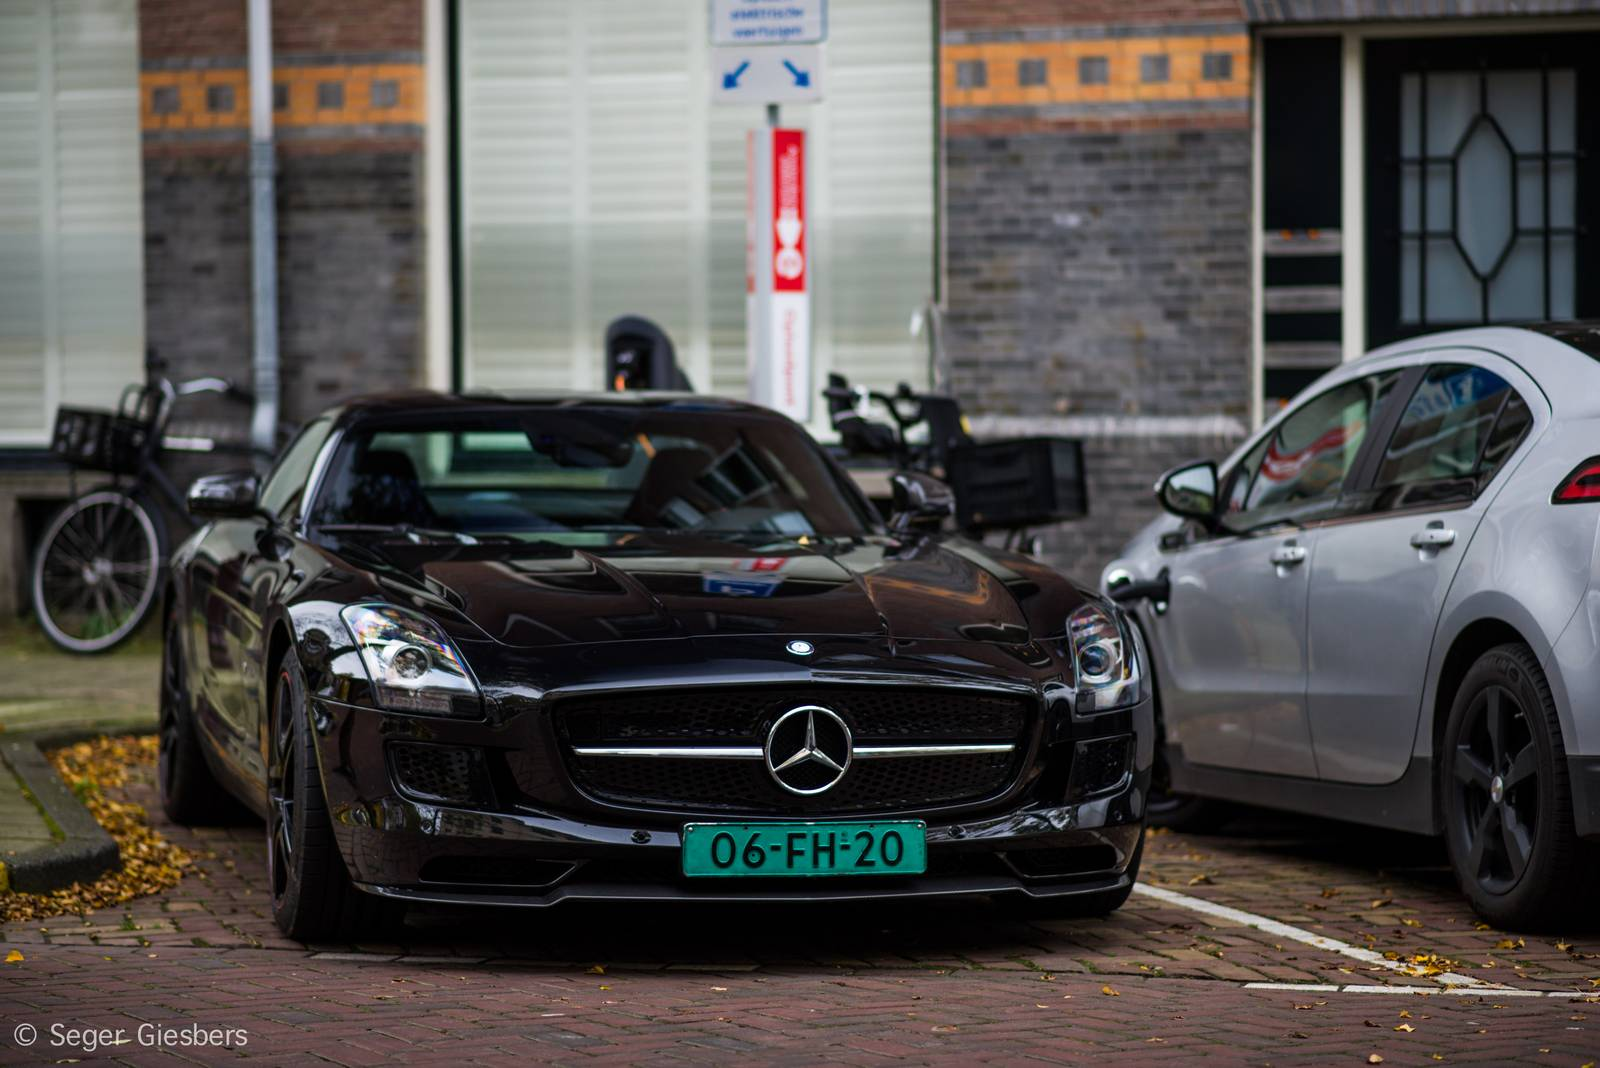 Mercedes benz sls amg electric drive spotted in amsterdam for Mercedes benz sls amg electric drive price